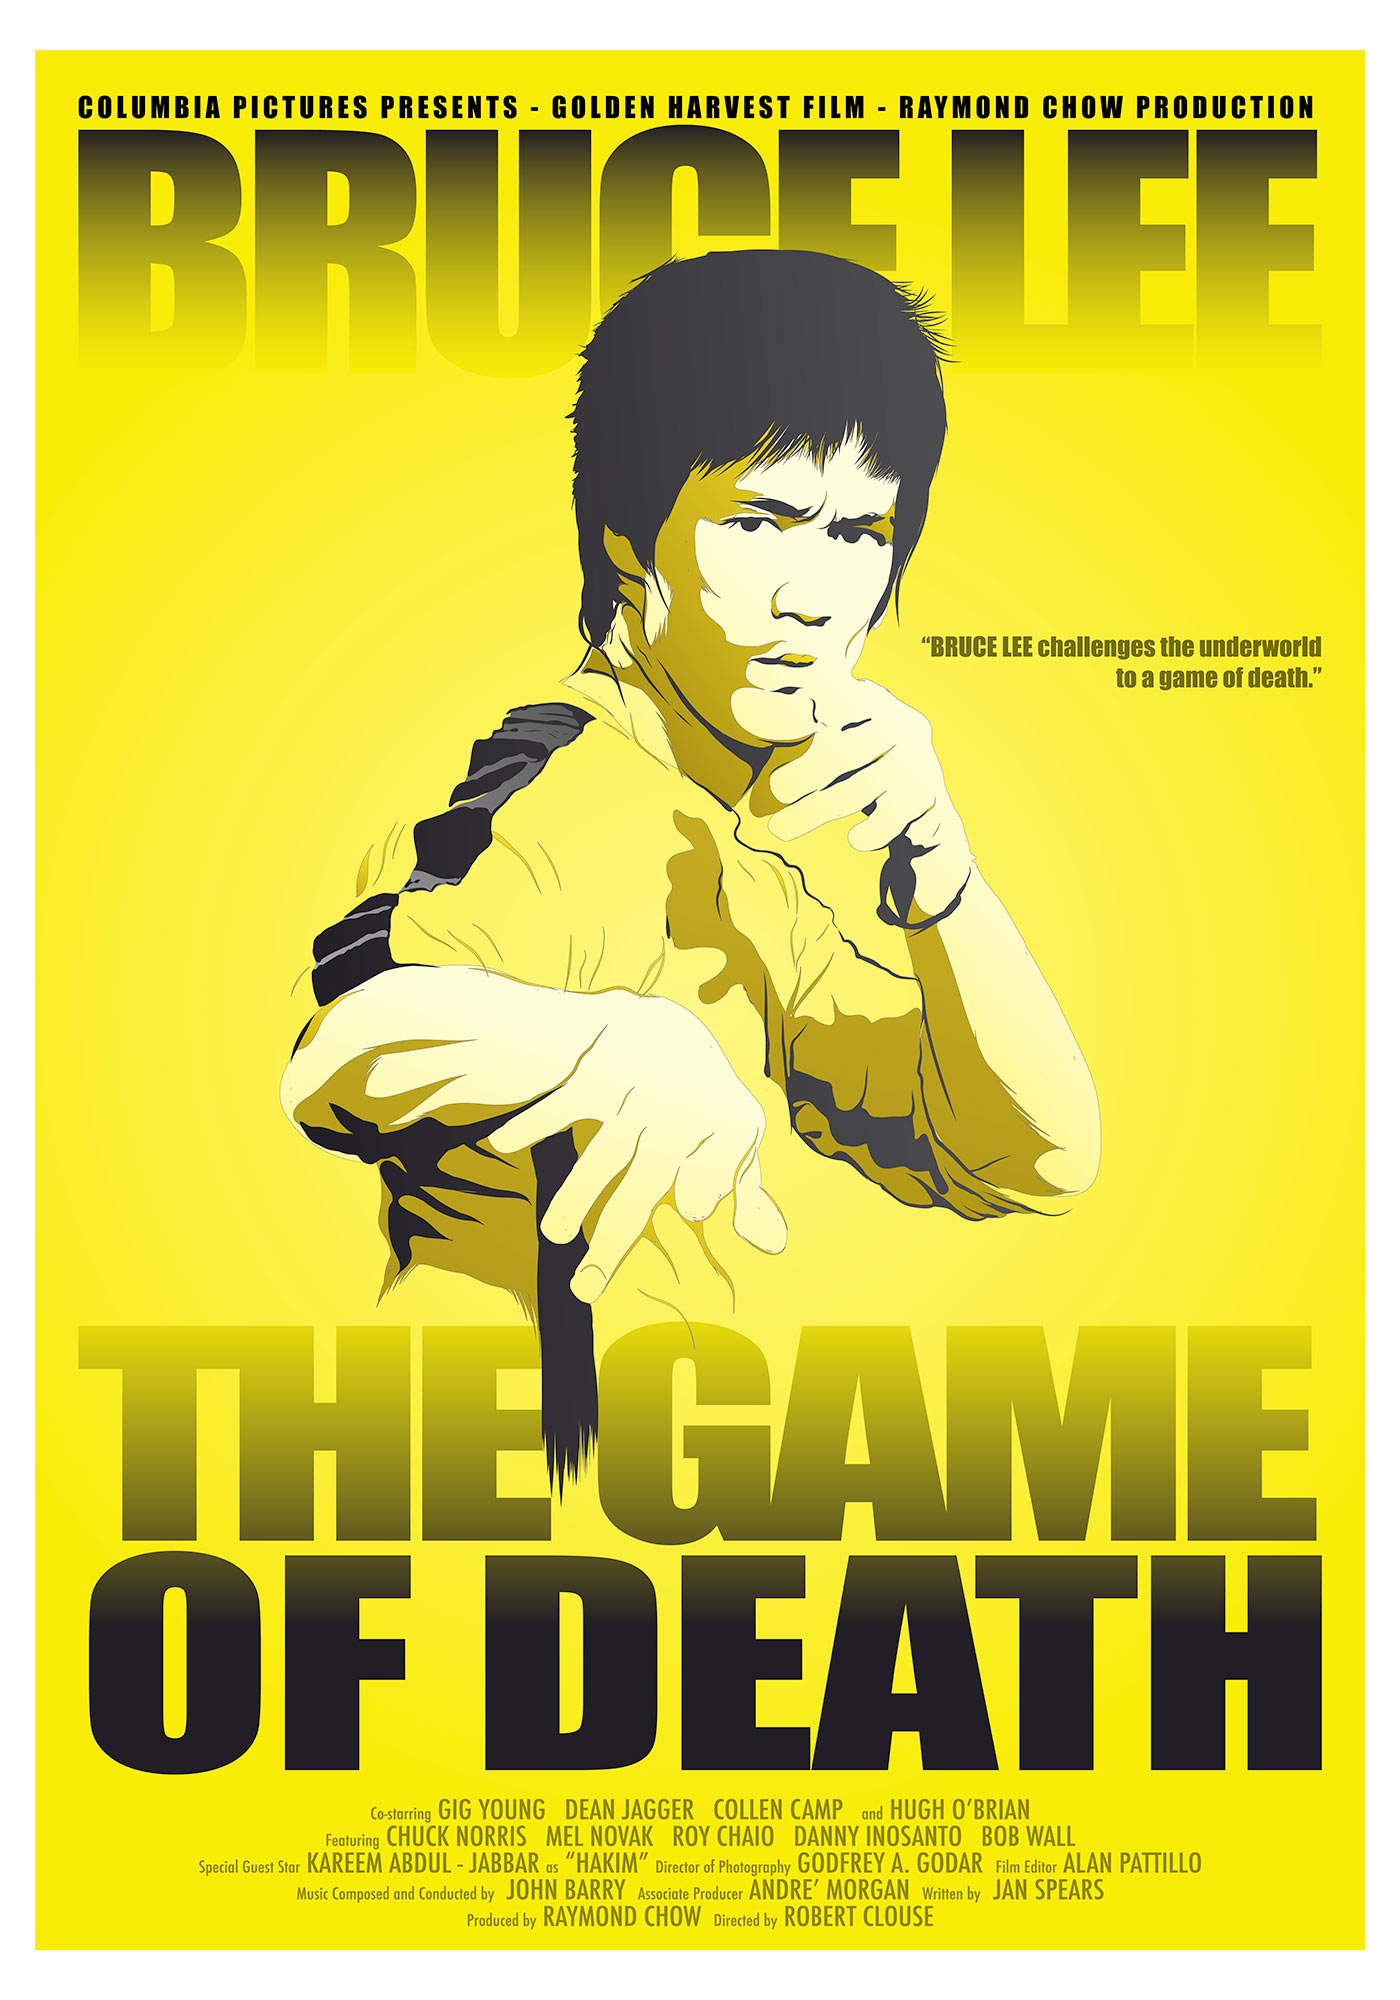 Game of Death - Alternative Poster